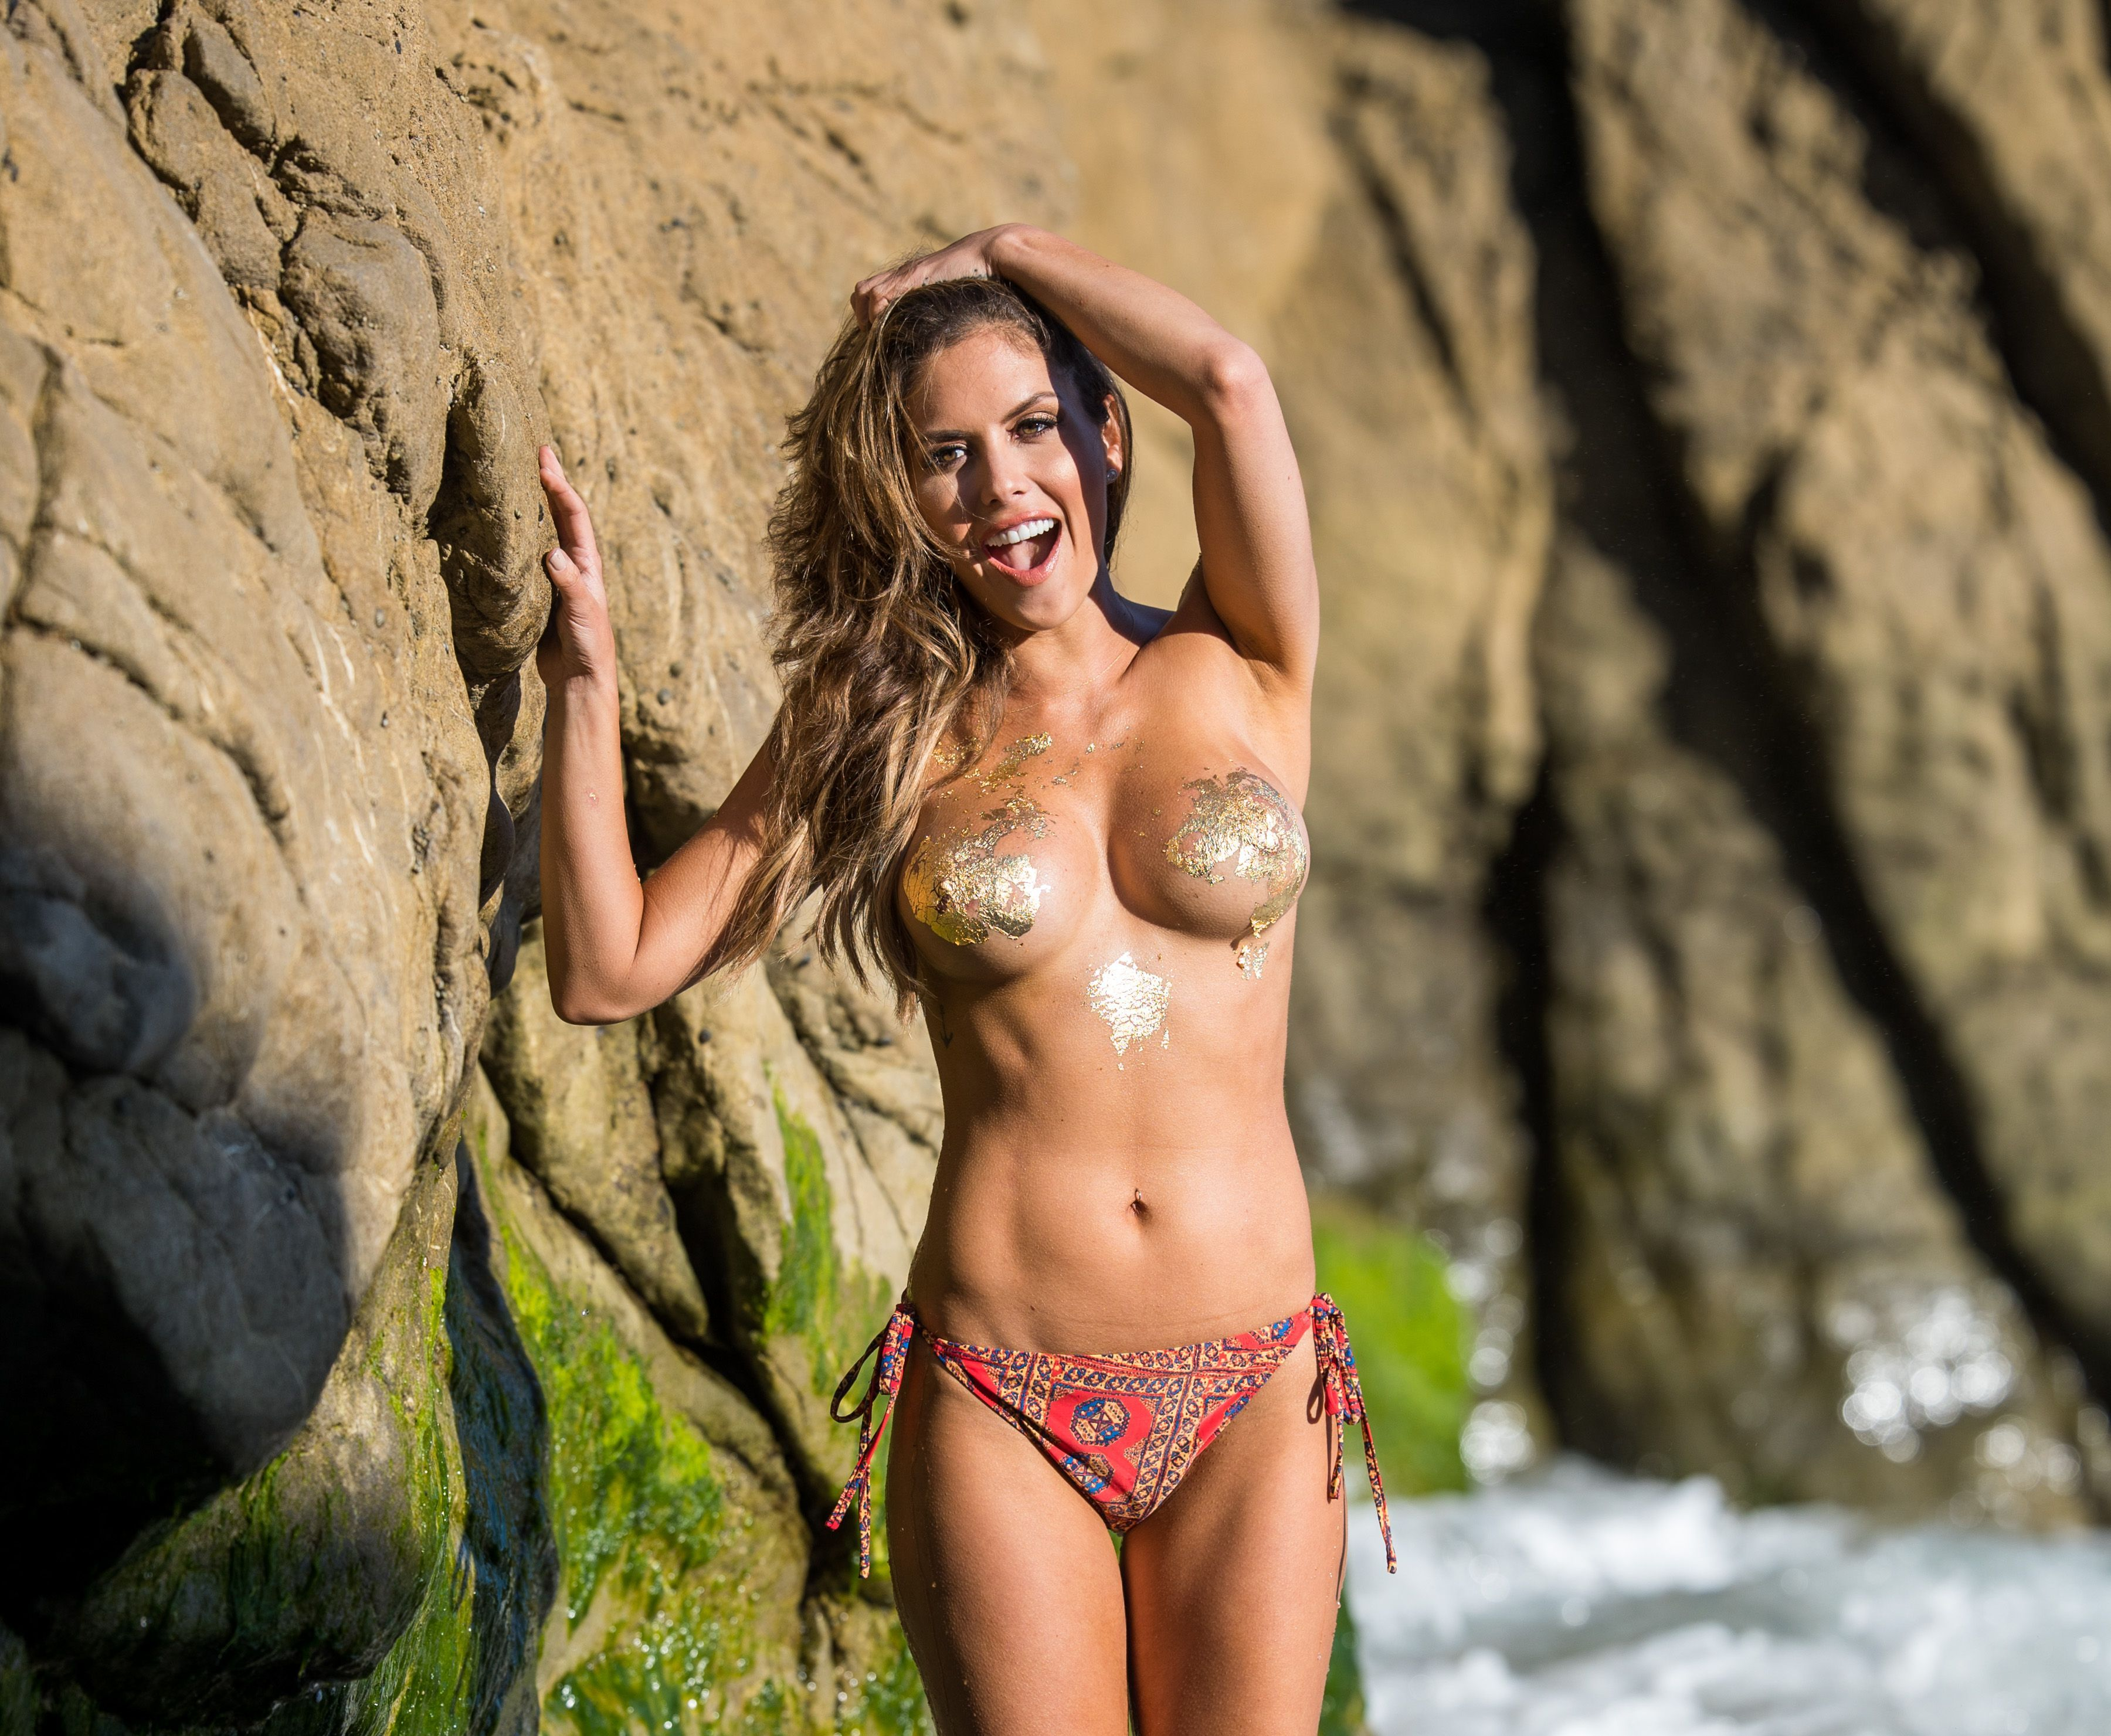 Brittney-Palmer-Sexy-Topless-8-thefappeningblog.com_.jpg